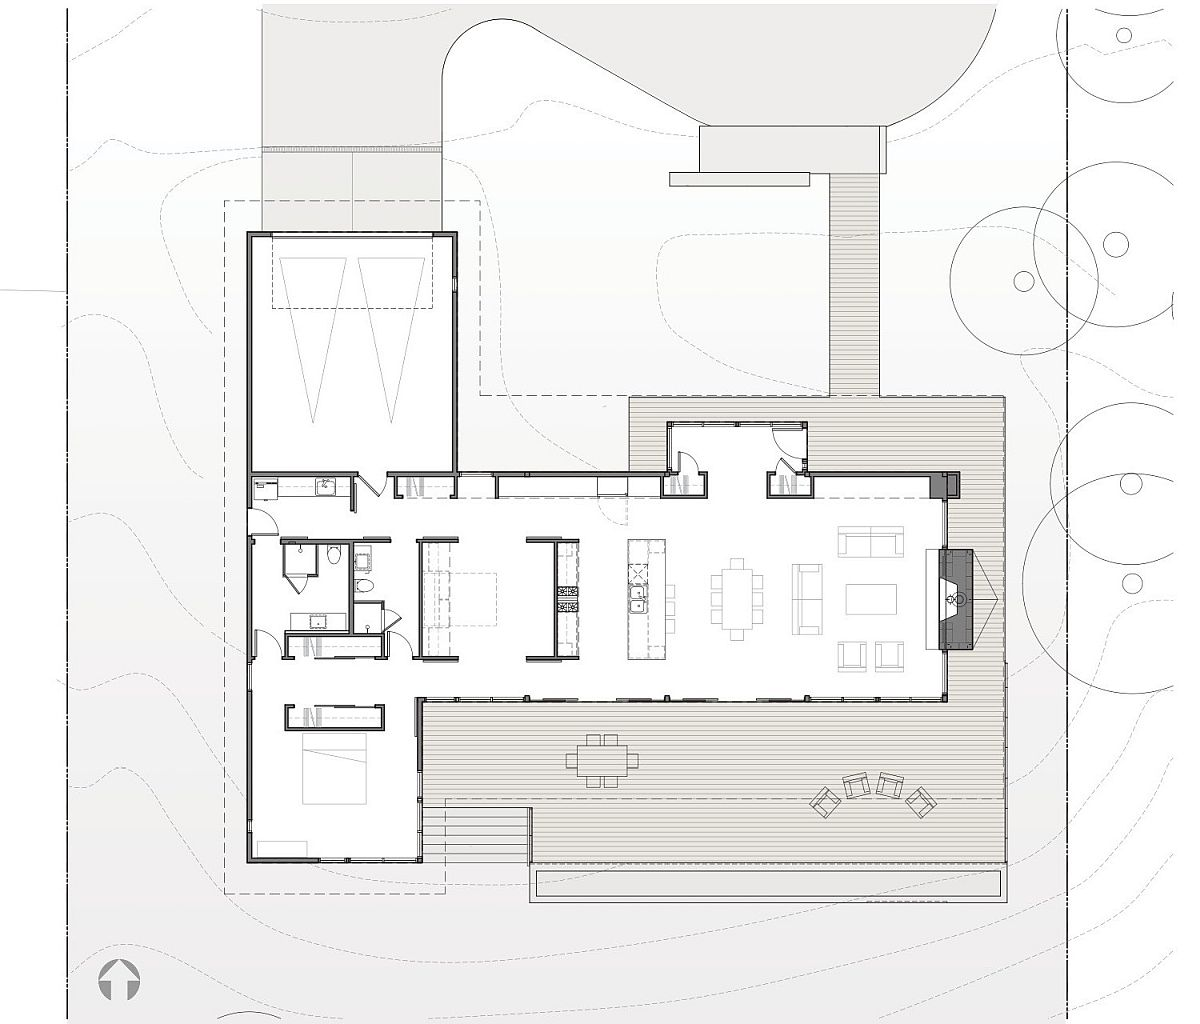 Design plan of Hotchkiss Residence in Vancouver